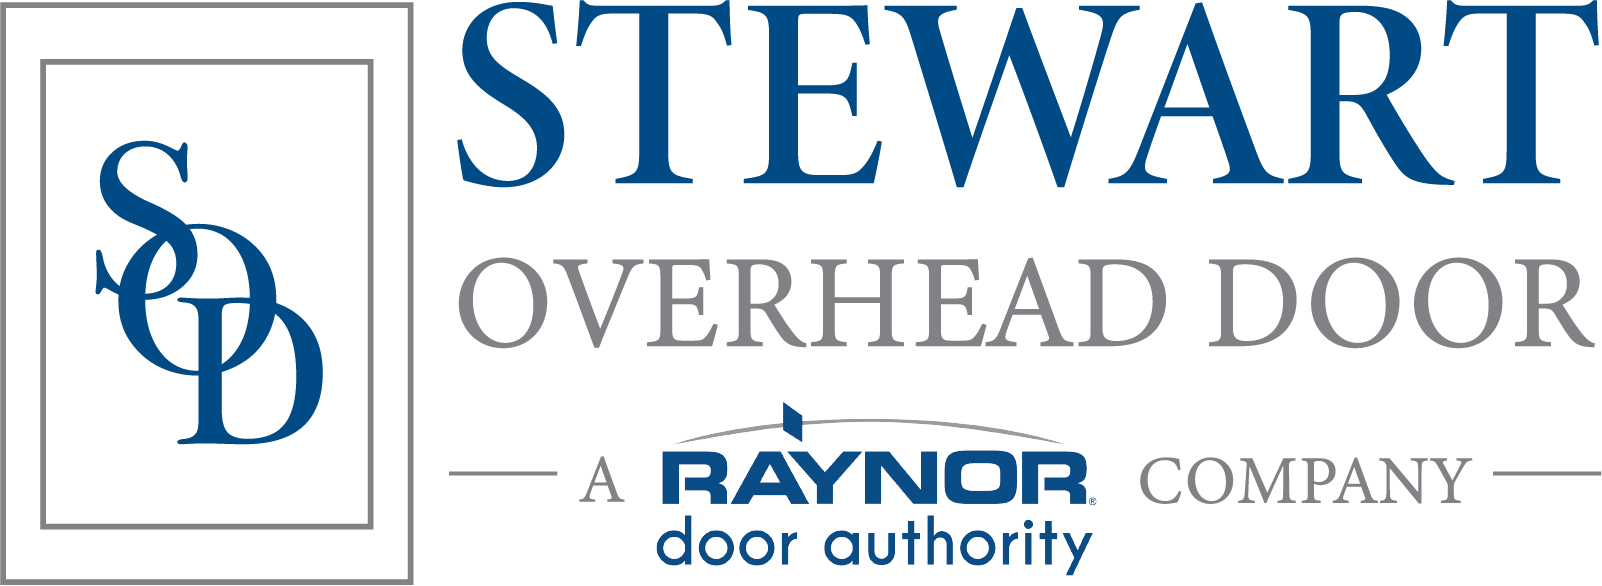 Stewart Overhead Door, A Raynor Door Authority Company